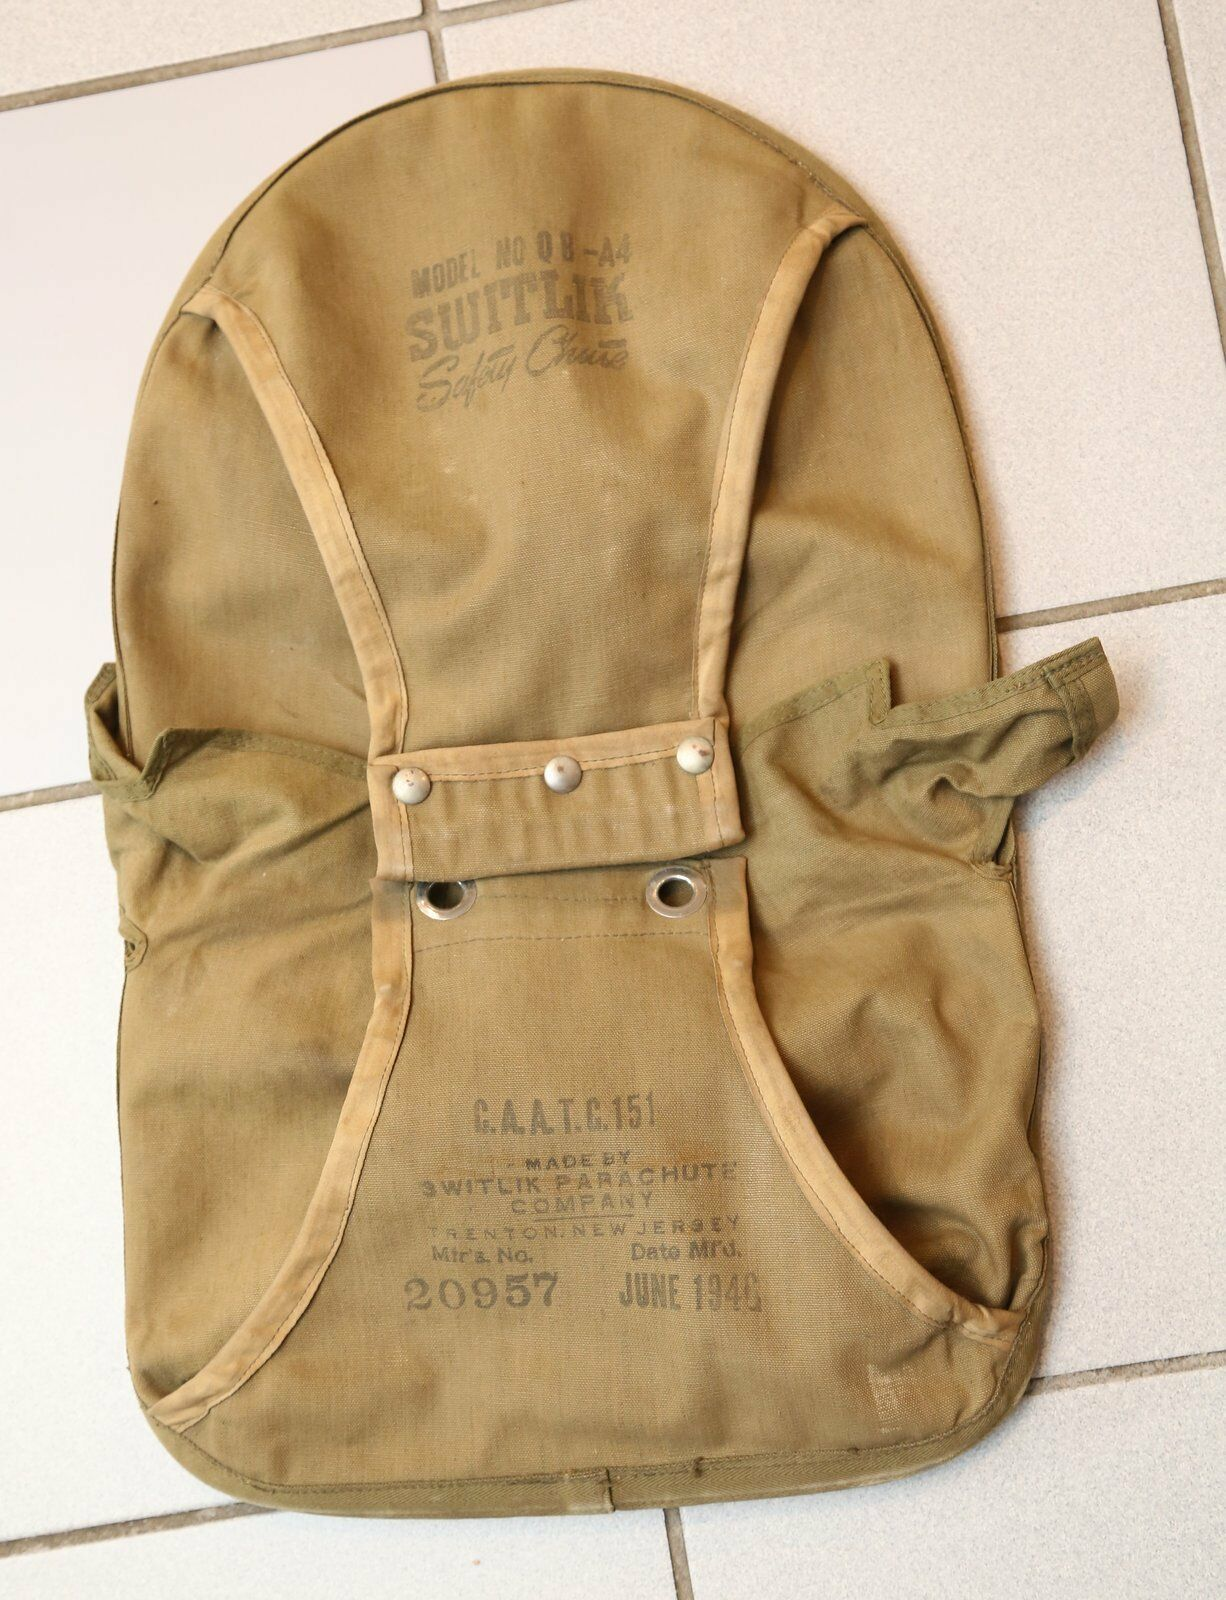 1946 Switlik Safety Chute parachute container  QBA4  with original data card